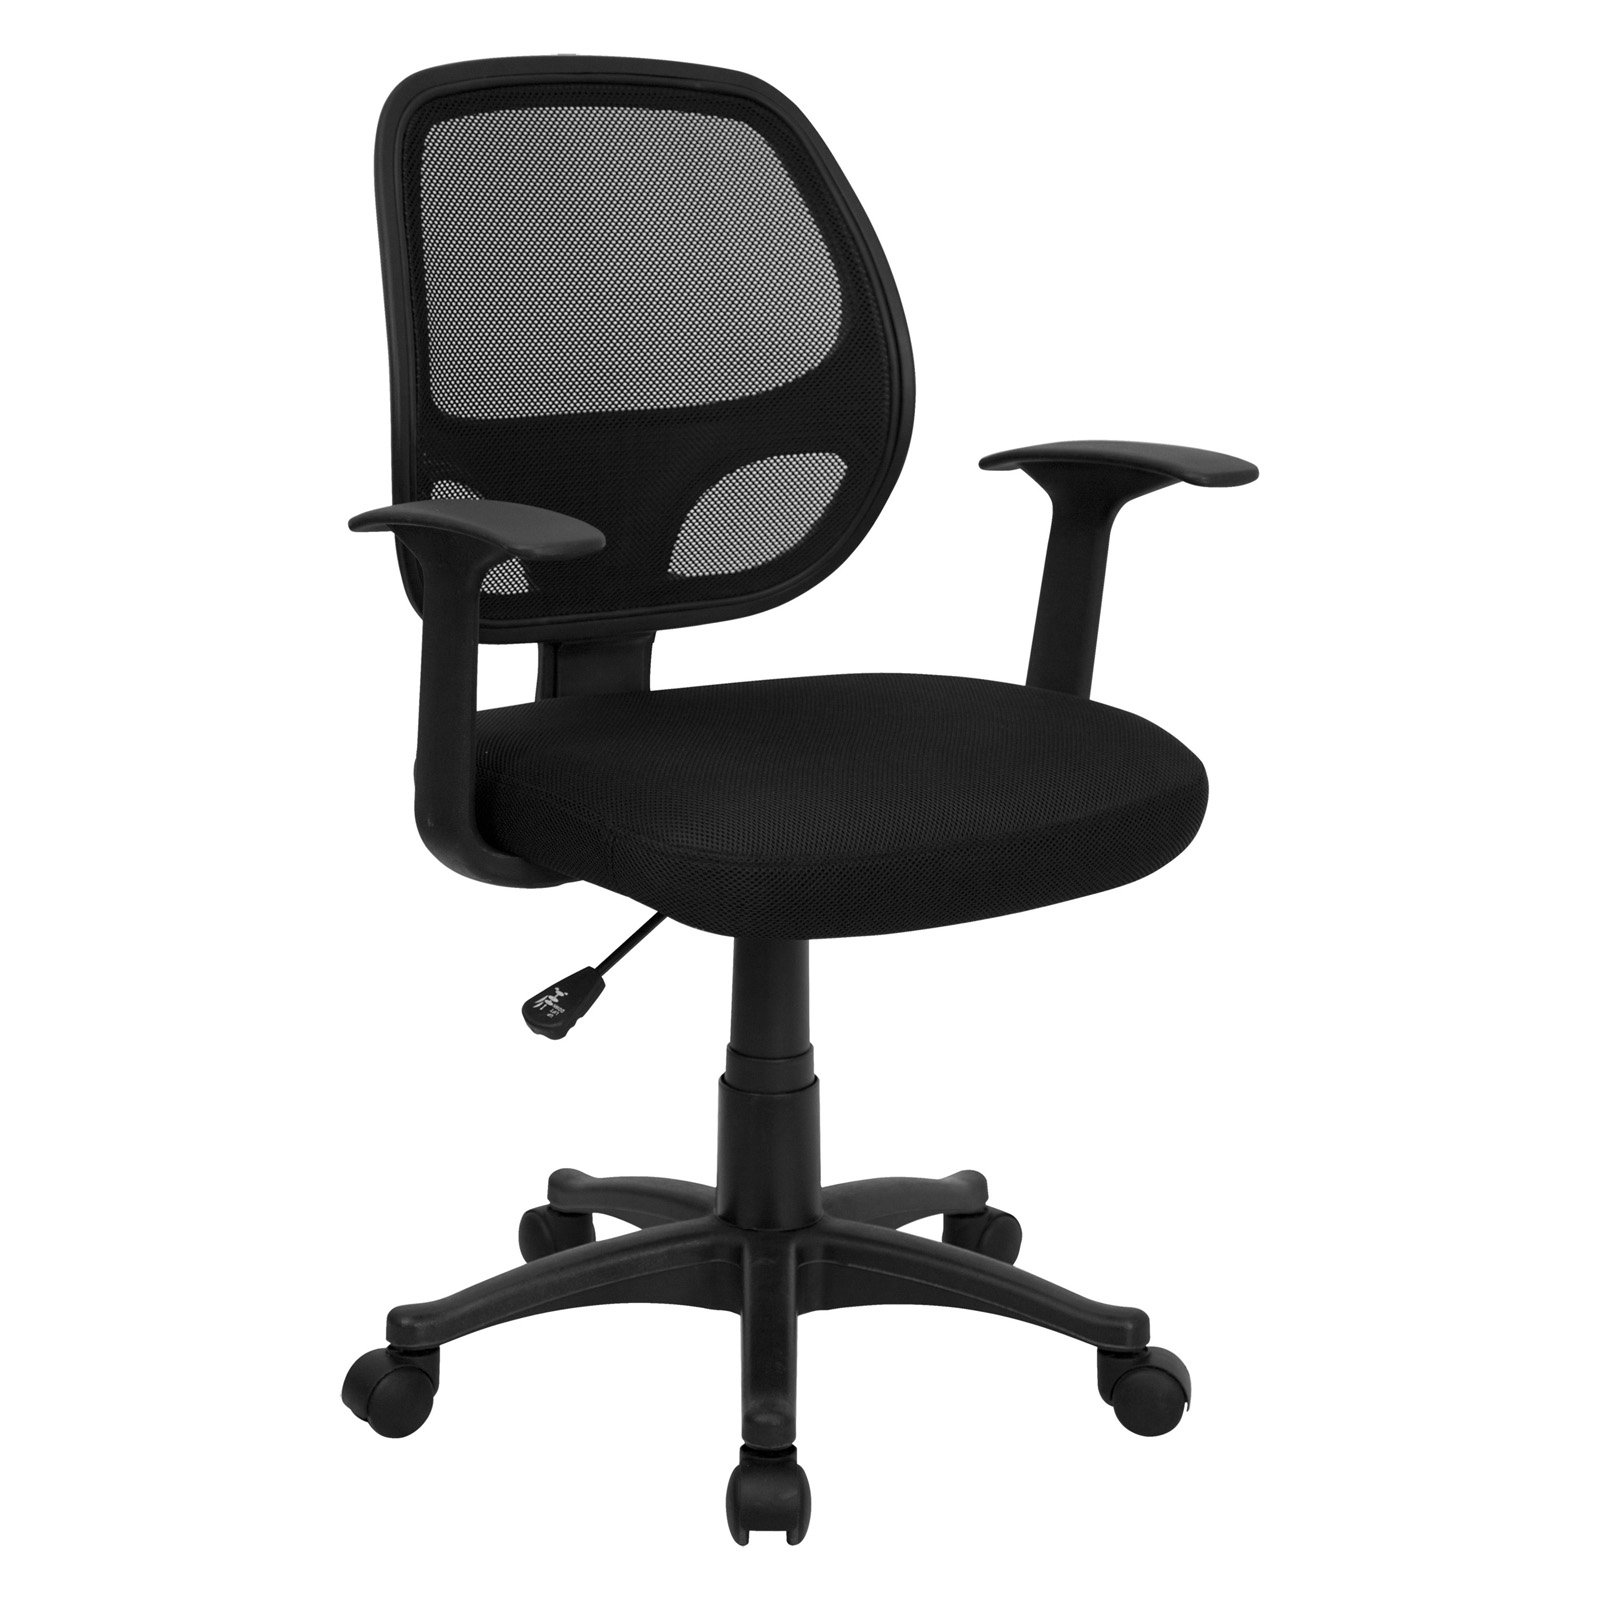 (Set of 8) Flash Furniture Mesh Back Computer Chair, Black - Walmart